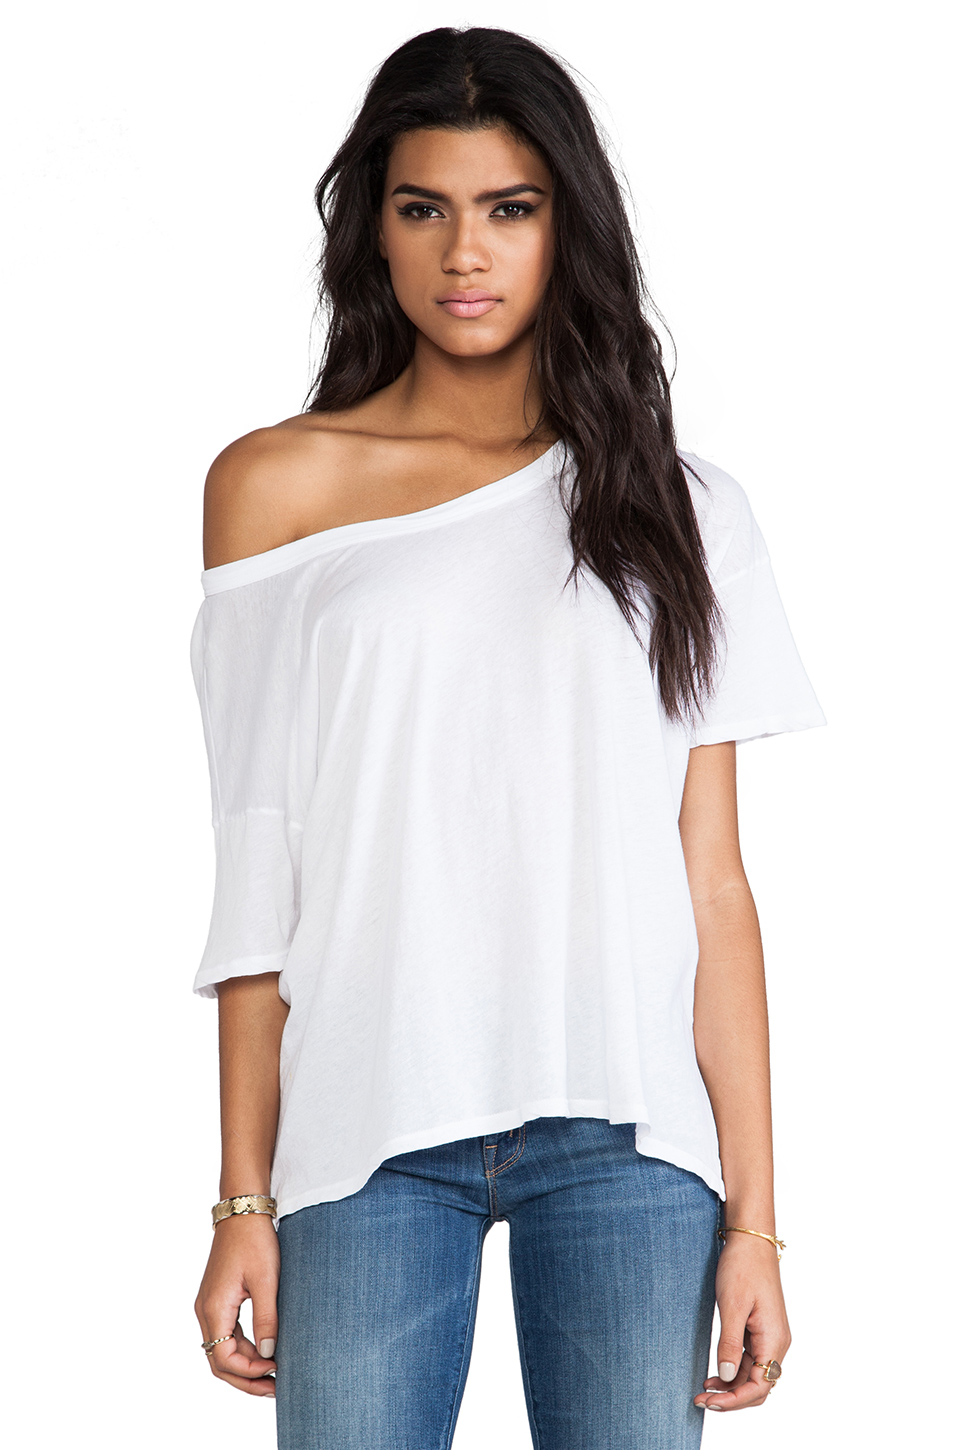 Enza Costa Tissue Jersey Drop Shoulder Short Sleeve in White from REVOLVEclothing.com